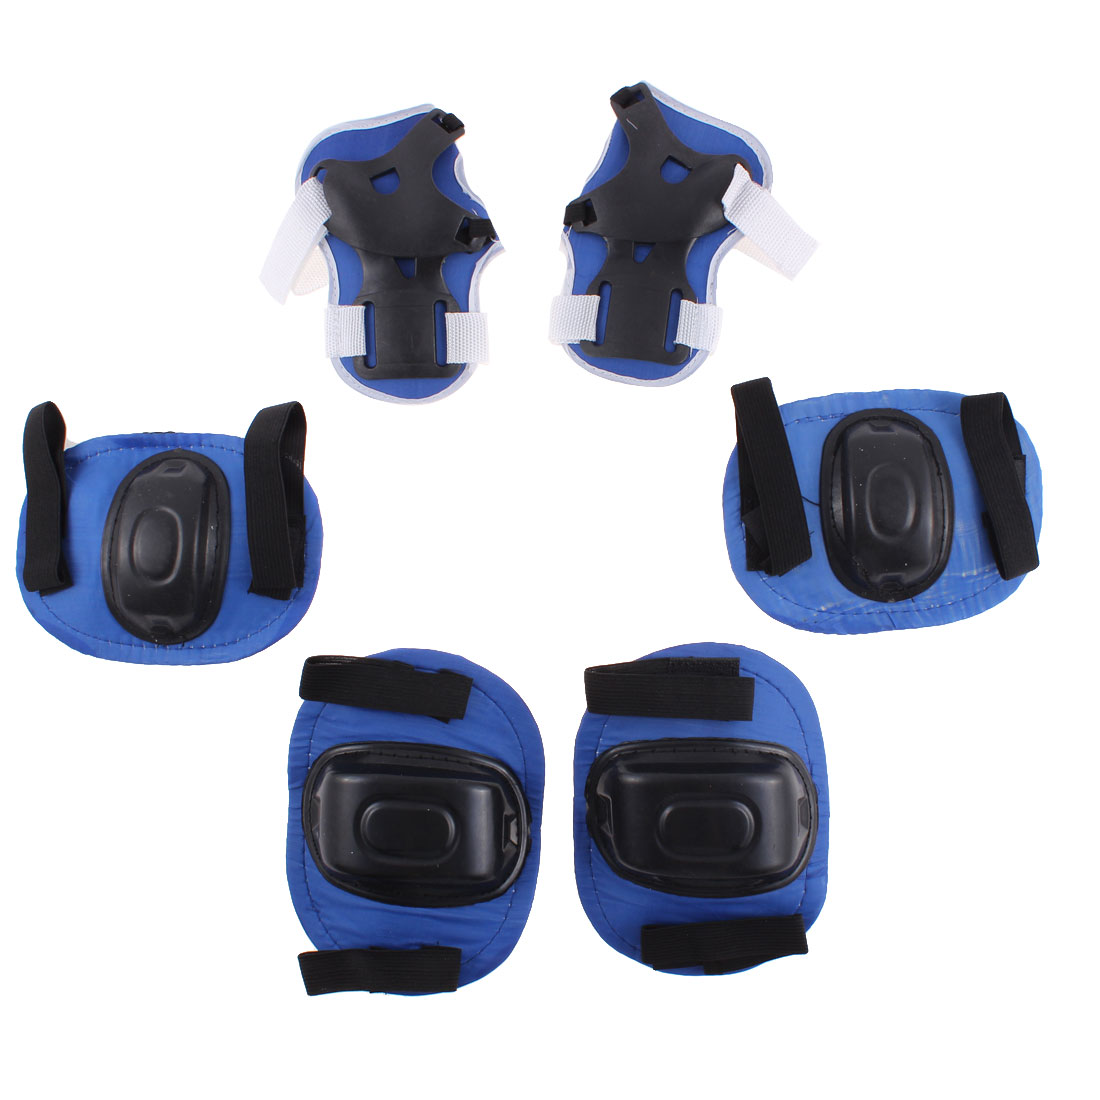 Set 6 in 1 Skiing Skating Palm Elbow Knee Support Protector Blue